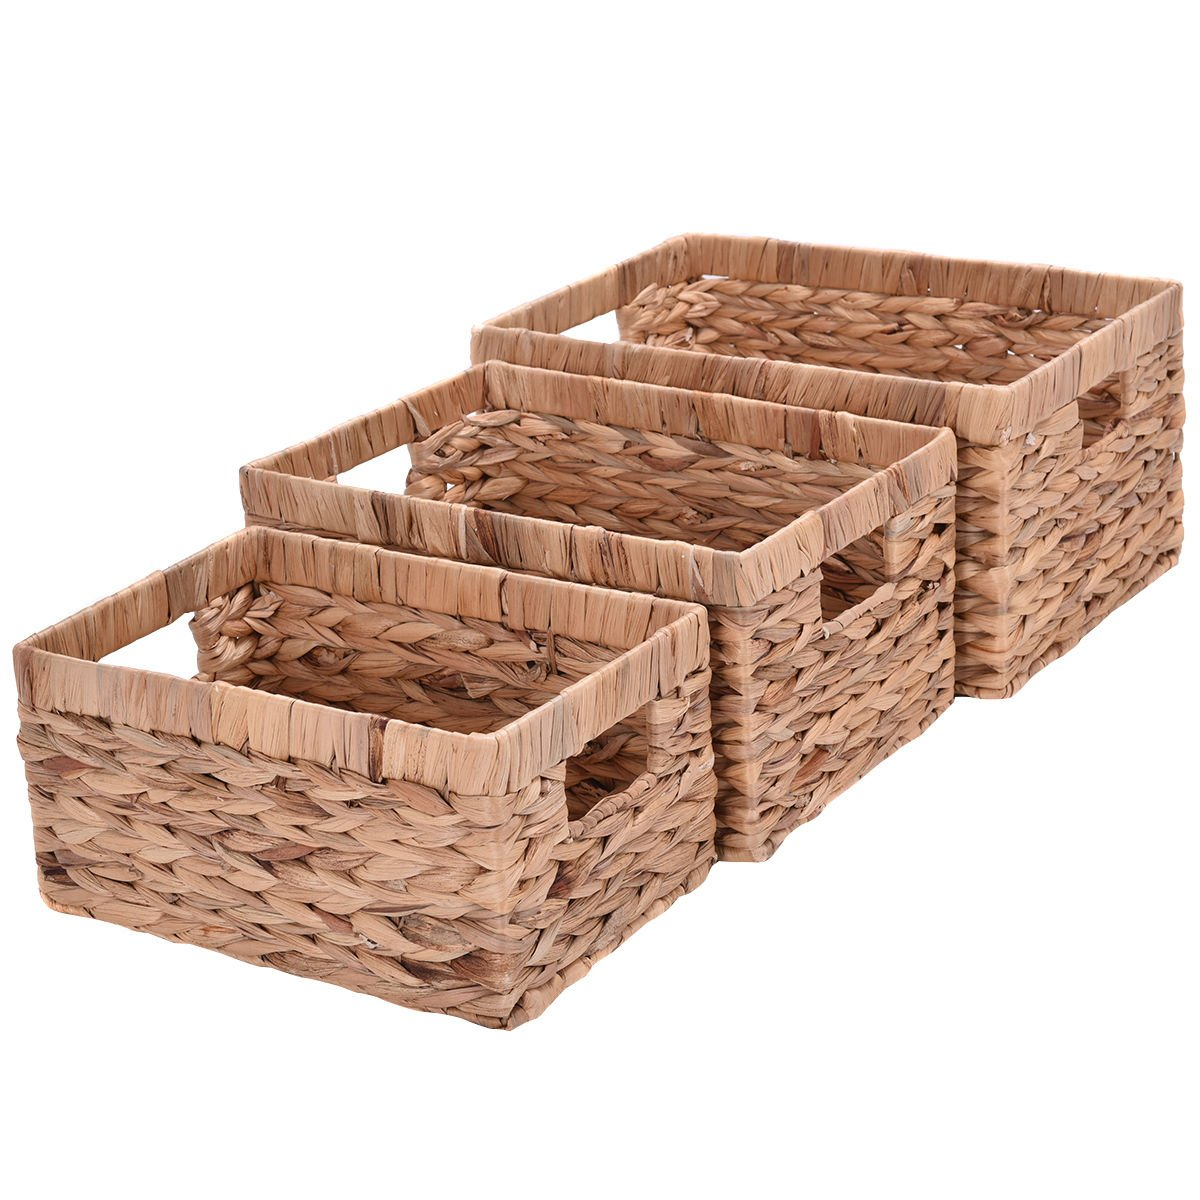 Giantex Set of 3 Hand Knitting Rectangle Storage Baskets Steel Frame Organizer (Set of 3 Without Handel) by Giantex